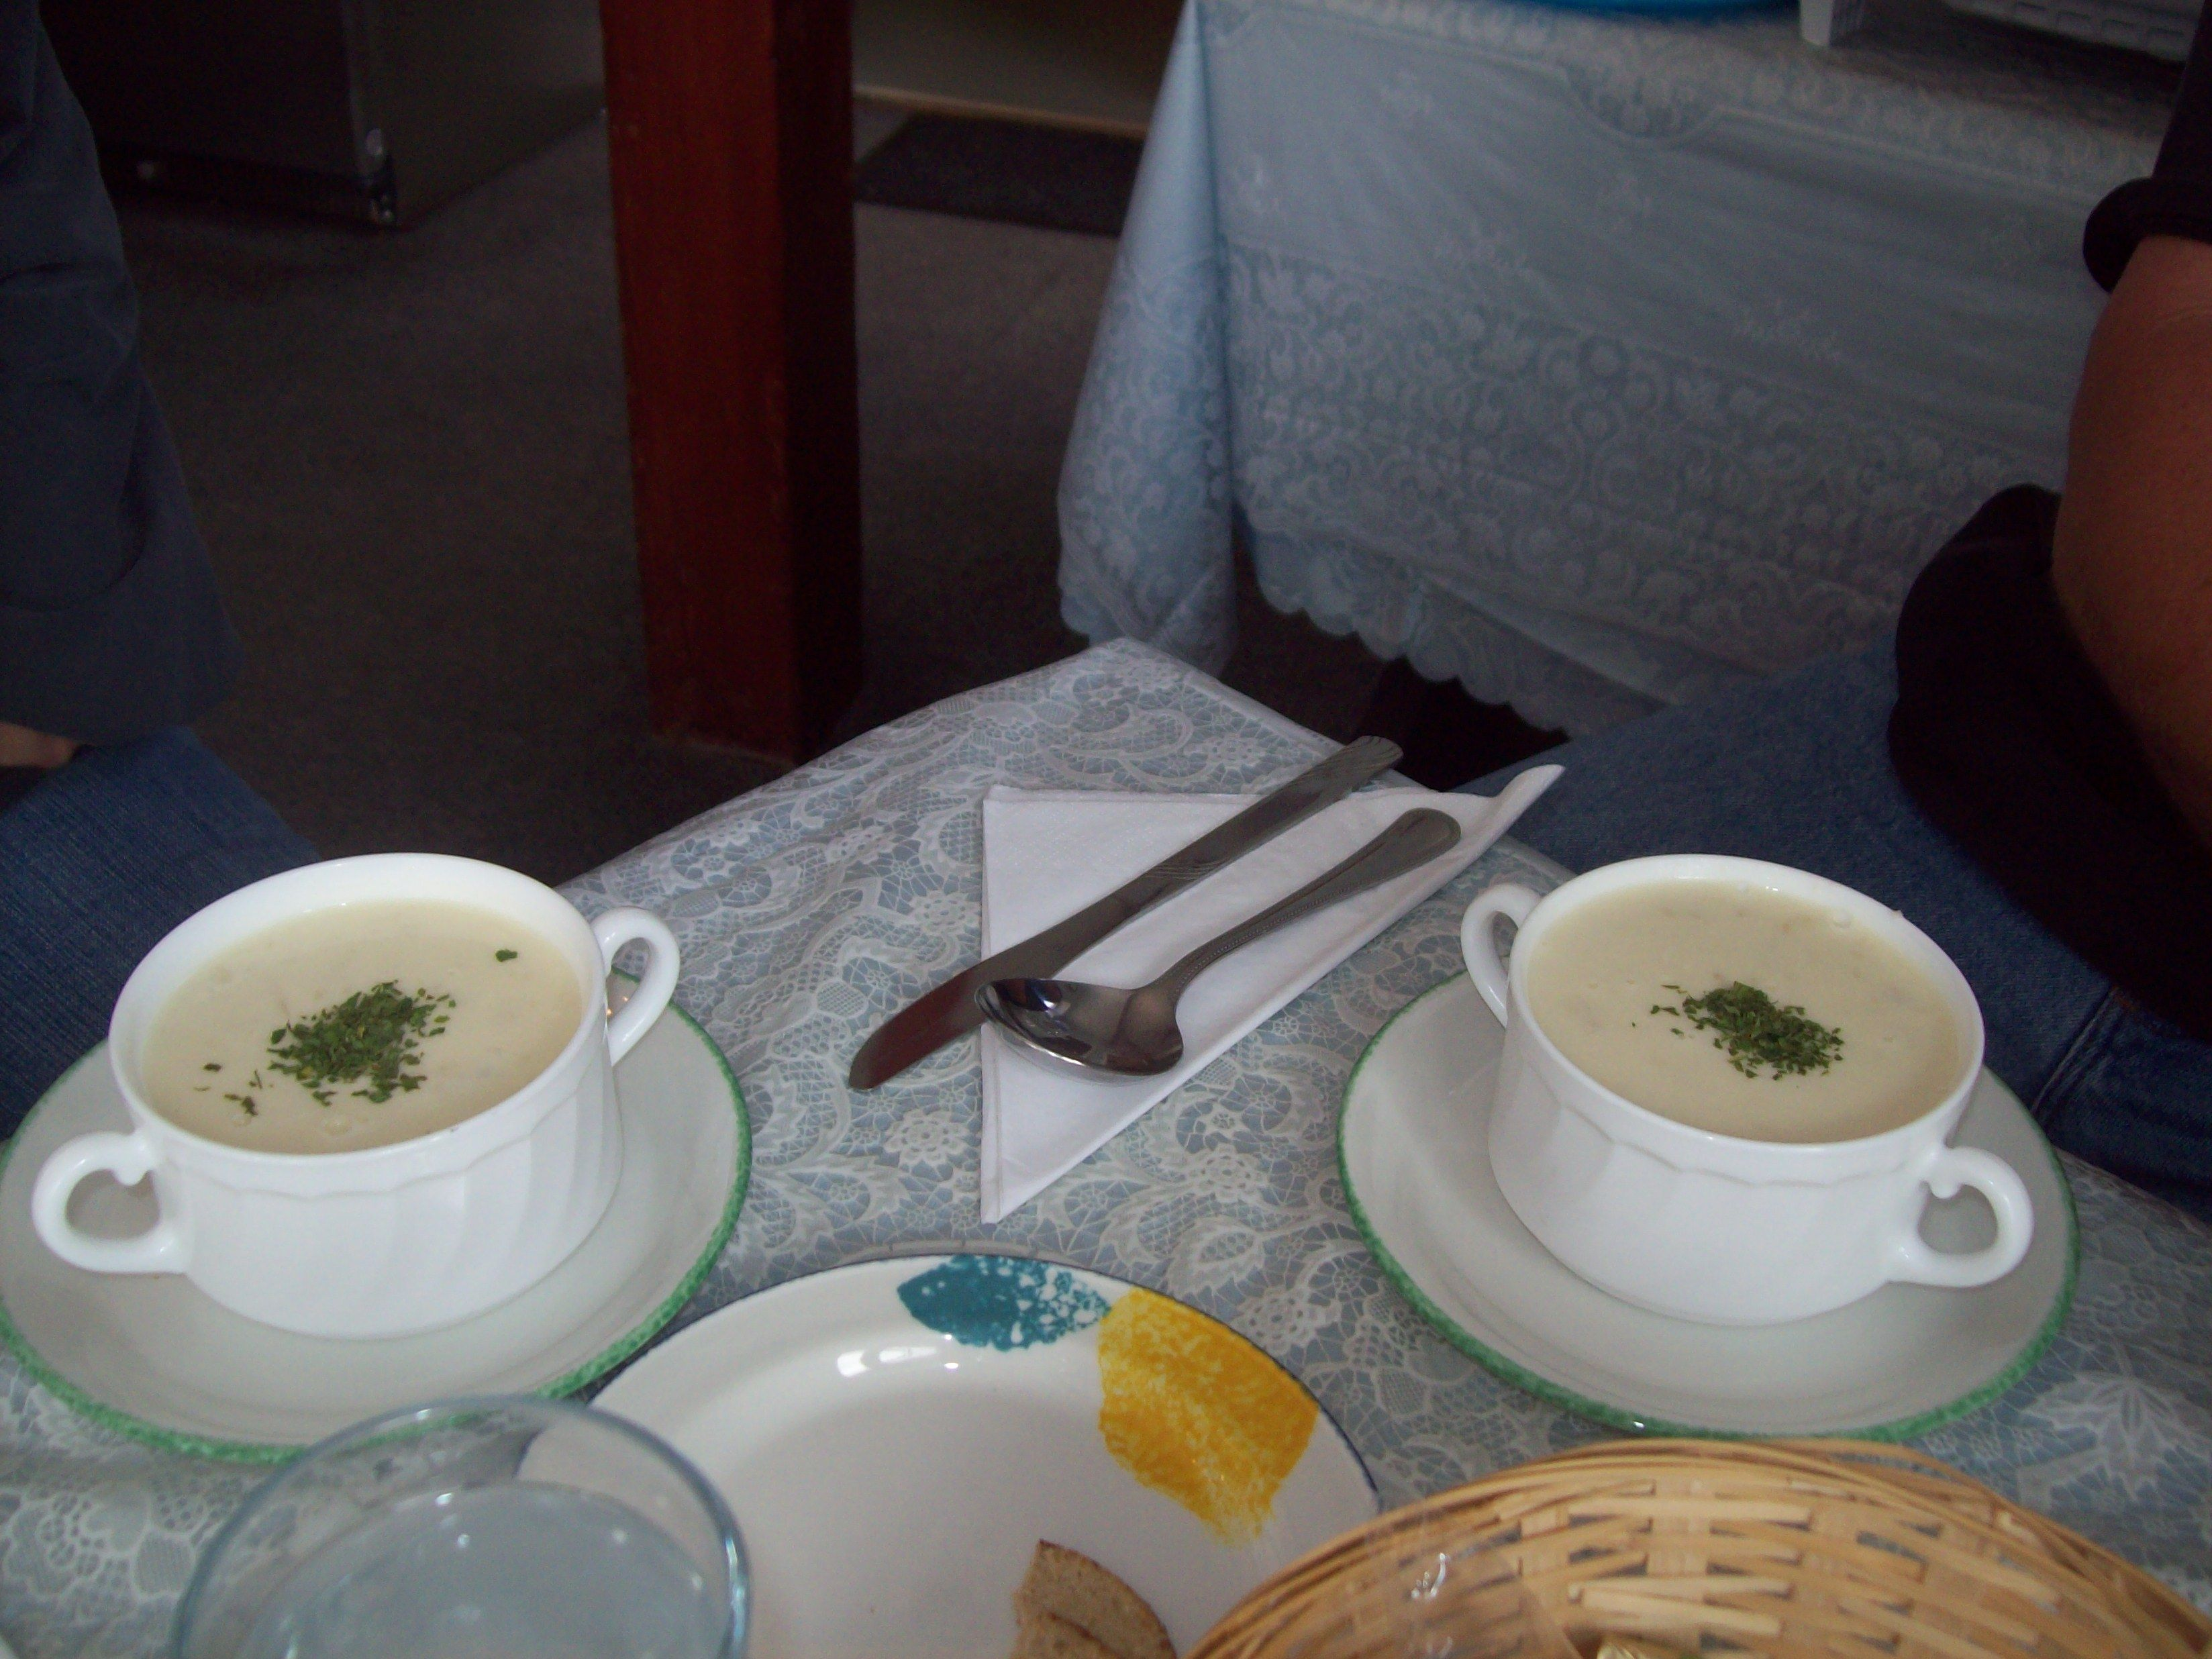 Cullen Skink -Amazing Fish Soup We stopped in a wee cafe' to have a bowl of this delicious soup with the funny name.  Named after the town of #Cullen in #Scotland where it is said to originate from. #EverythingScottish #Soup #Travel